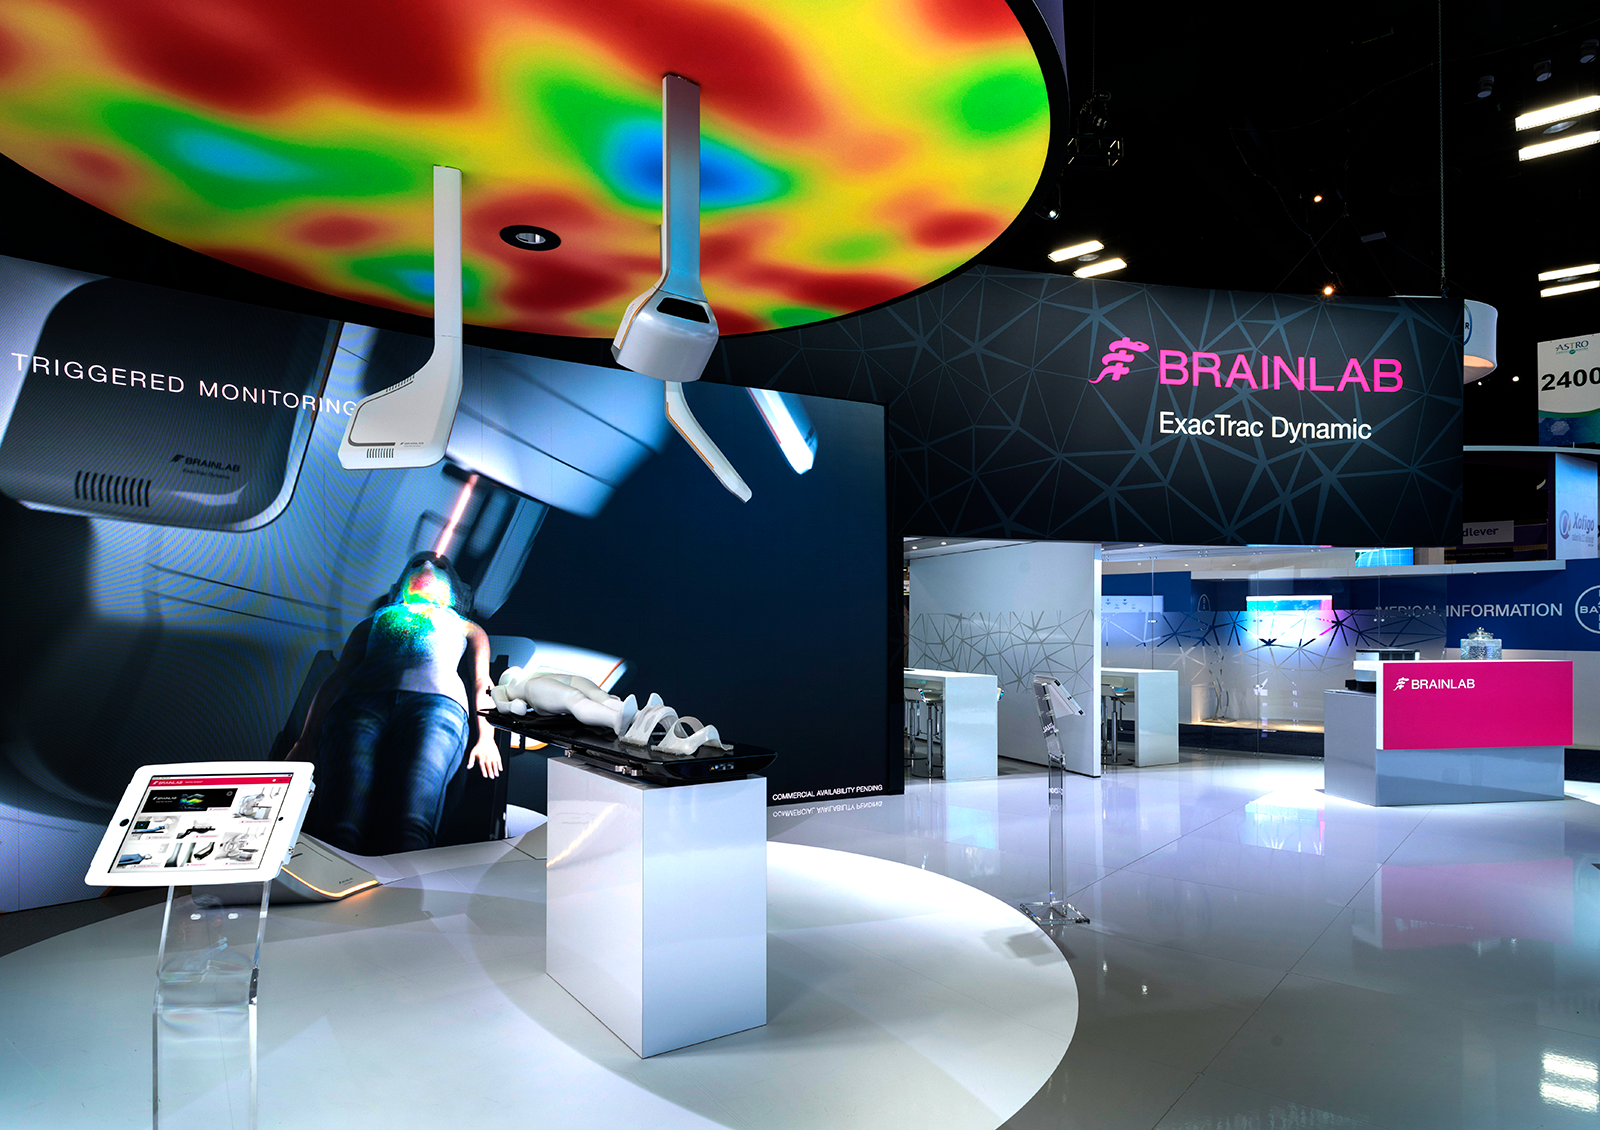 Brainlab Astro Exhibit